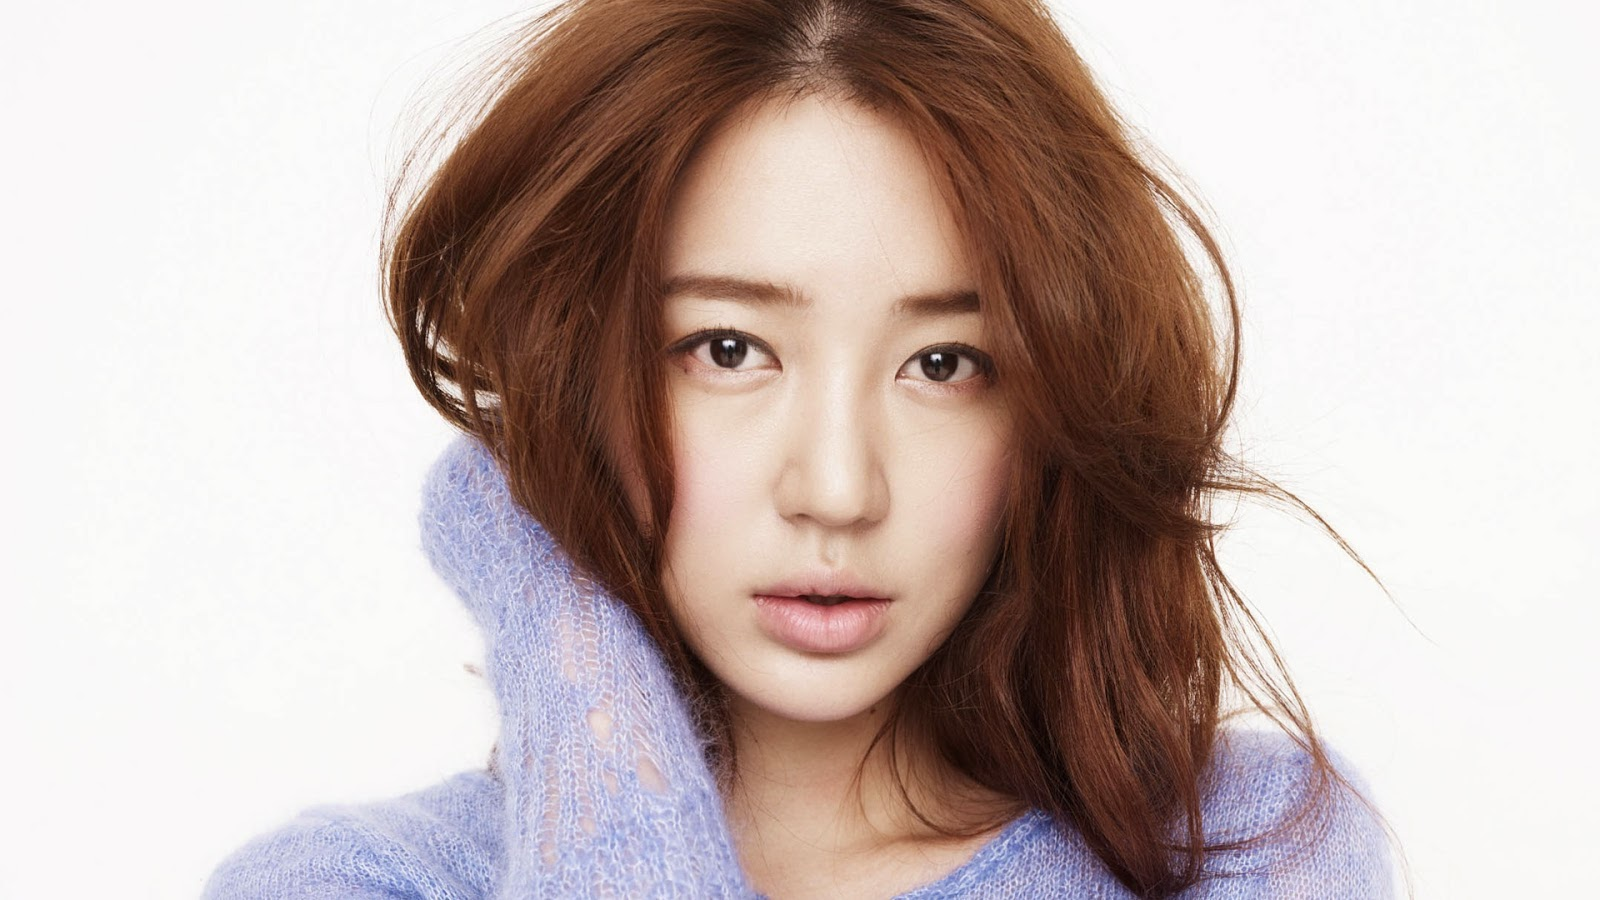 Yoon Eun Hye Wallpaper HD